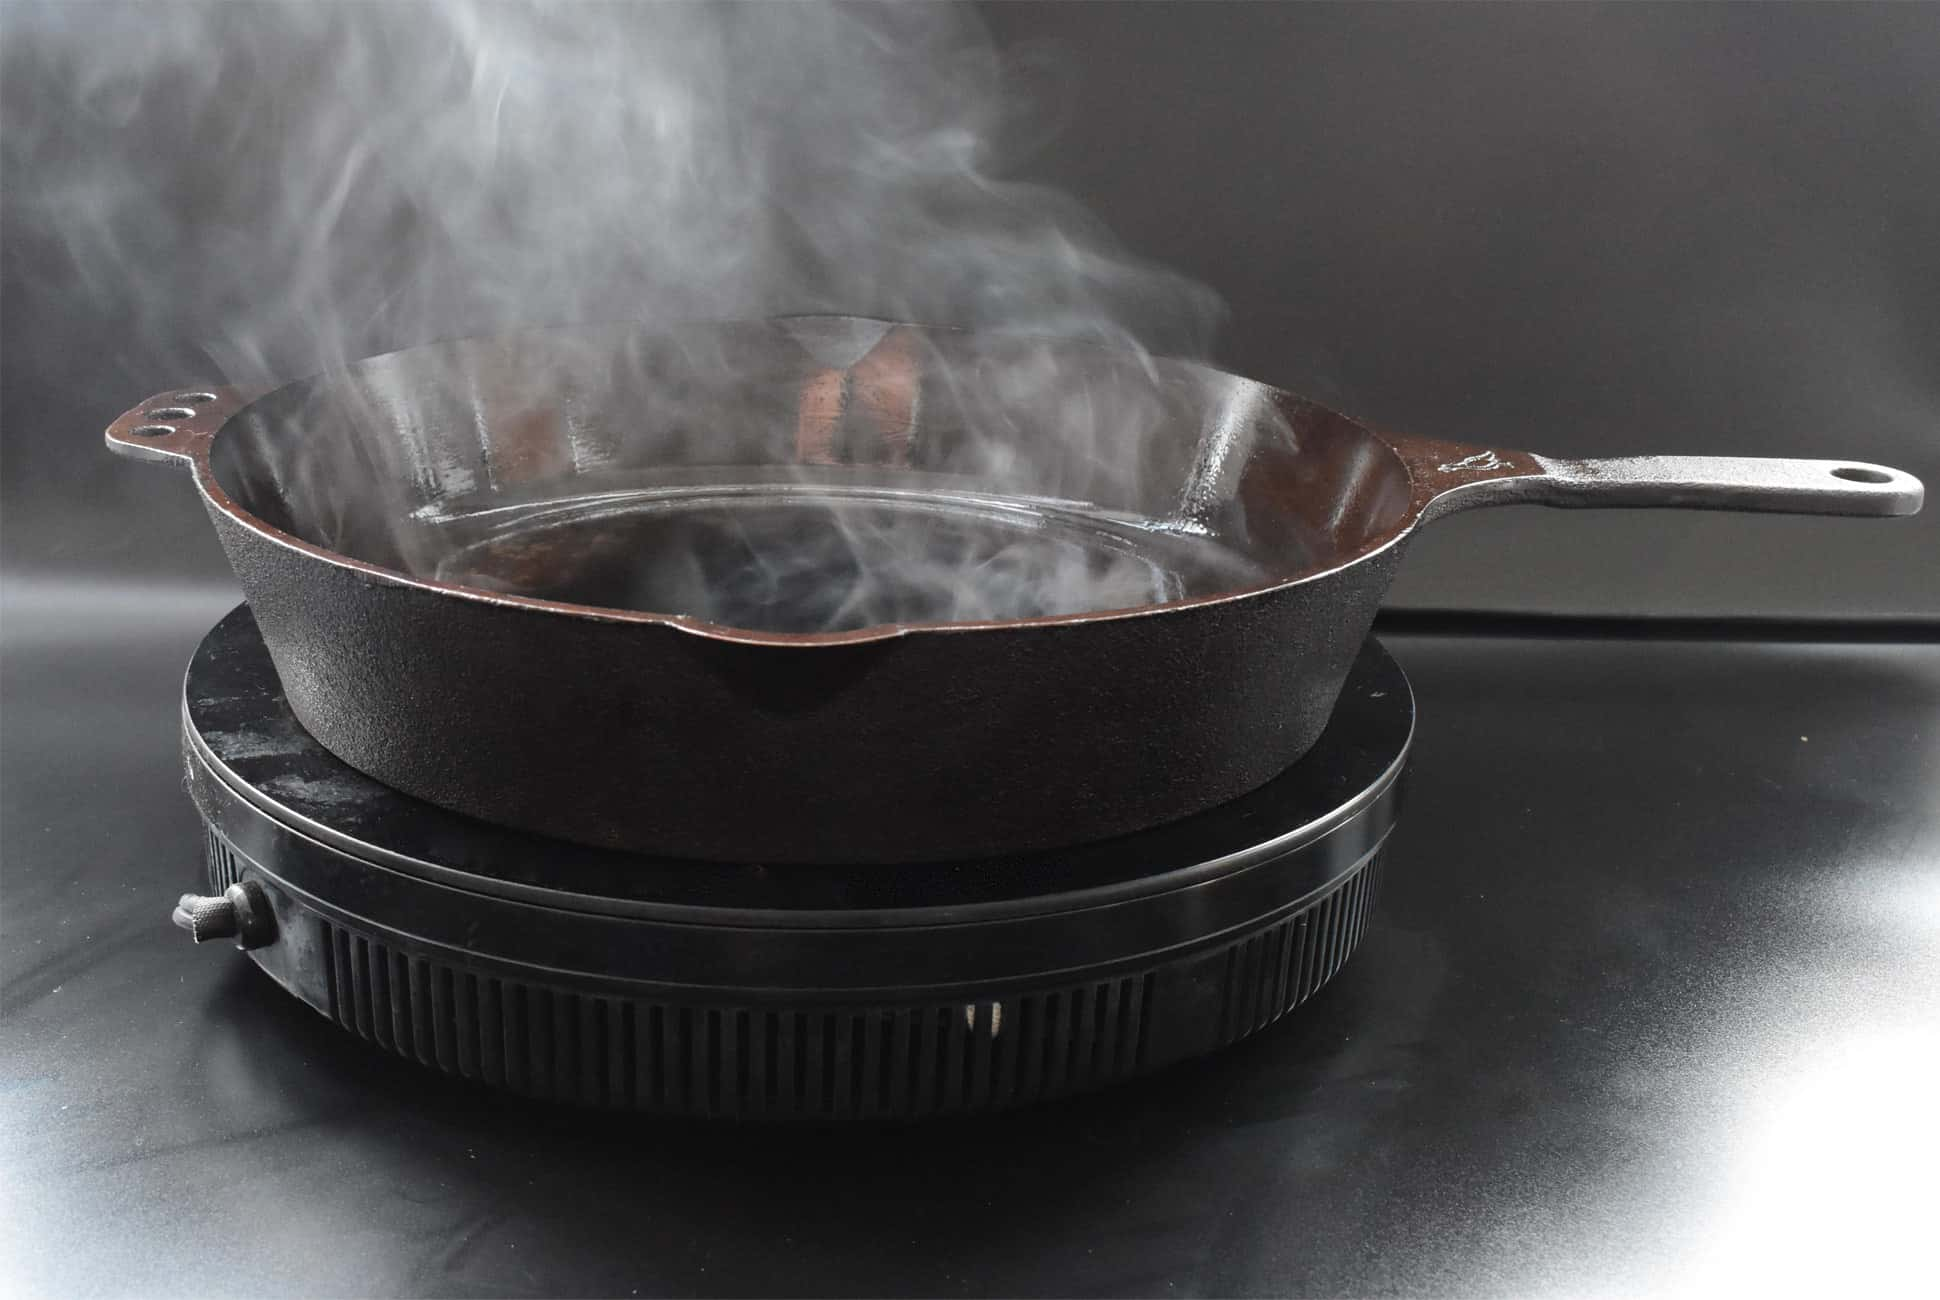 Having Problems Seasoning Your Cast-Iron Skillet? This Method Is Faster and Easier.